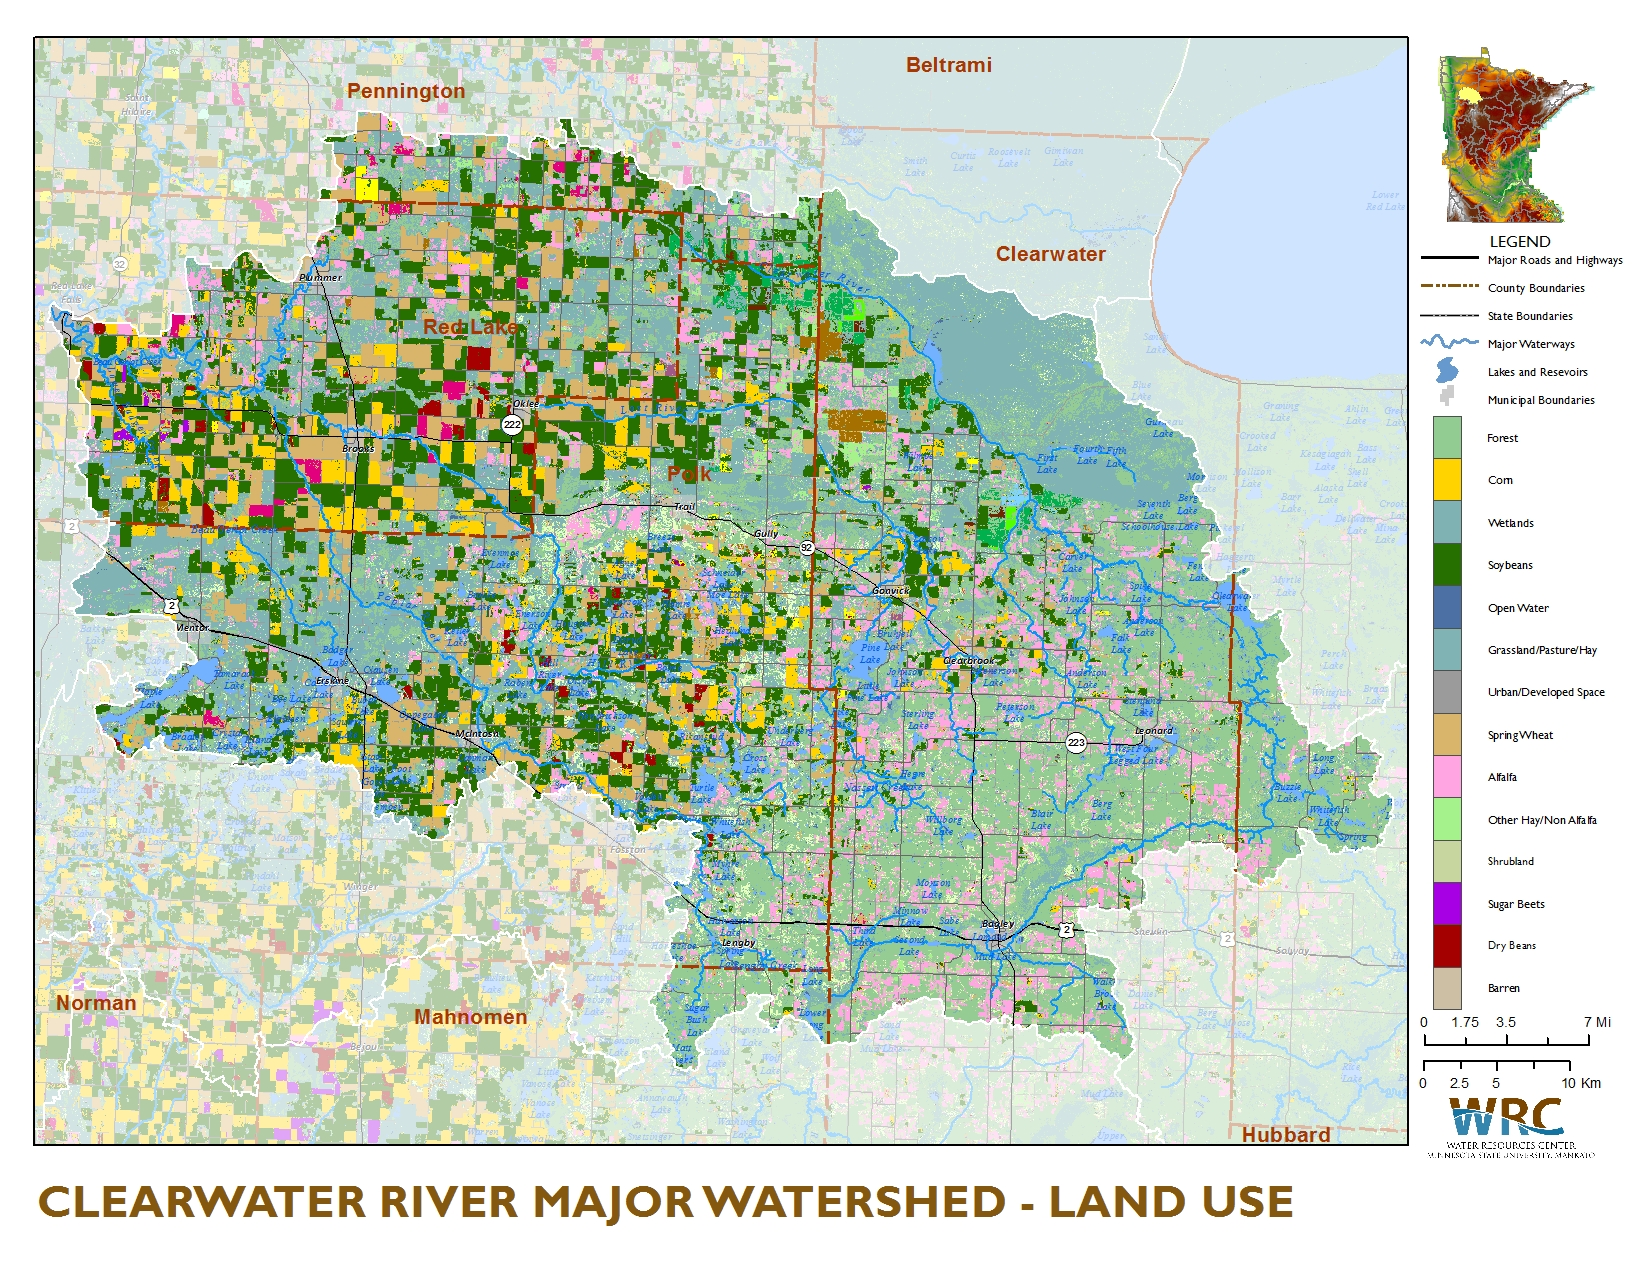 Clearwater River Watershed | Minnesota Nutrient Data Portal on